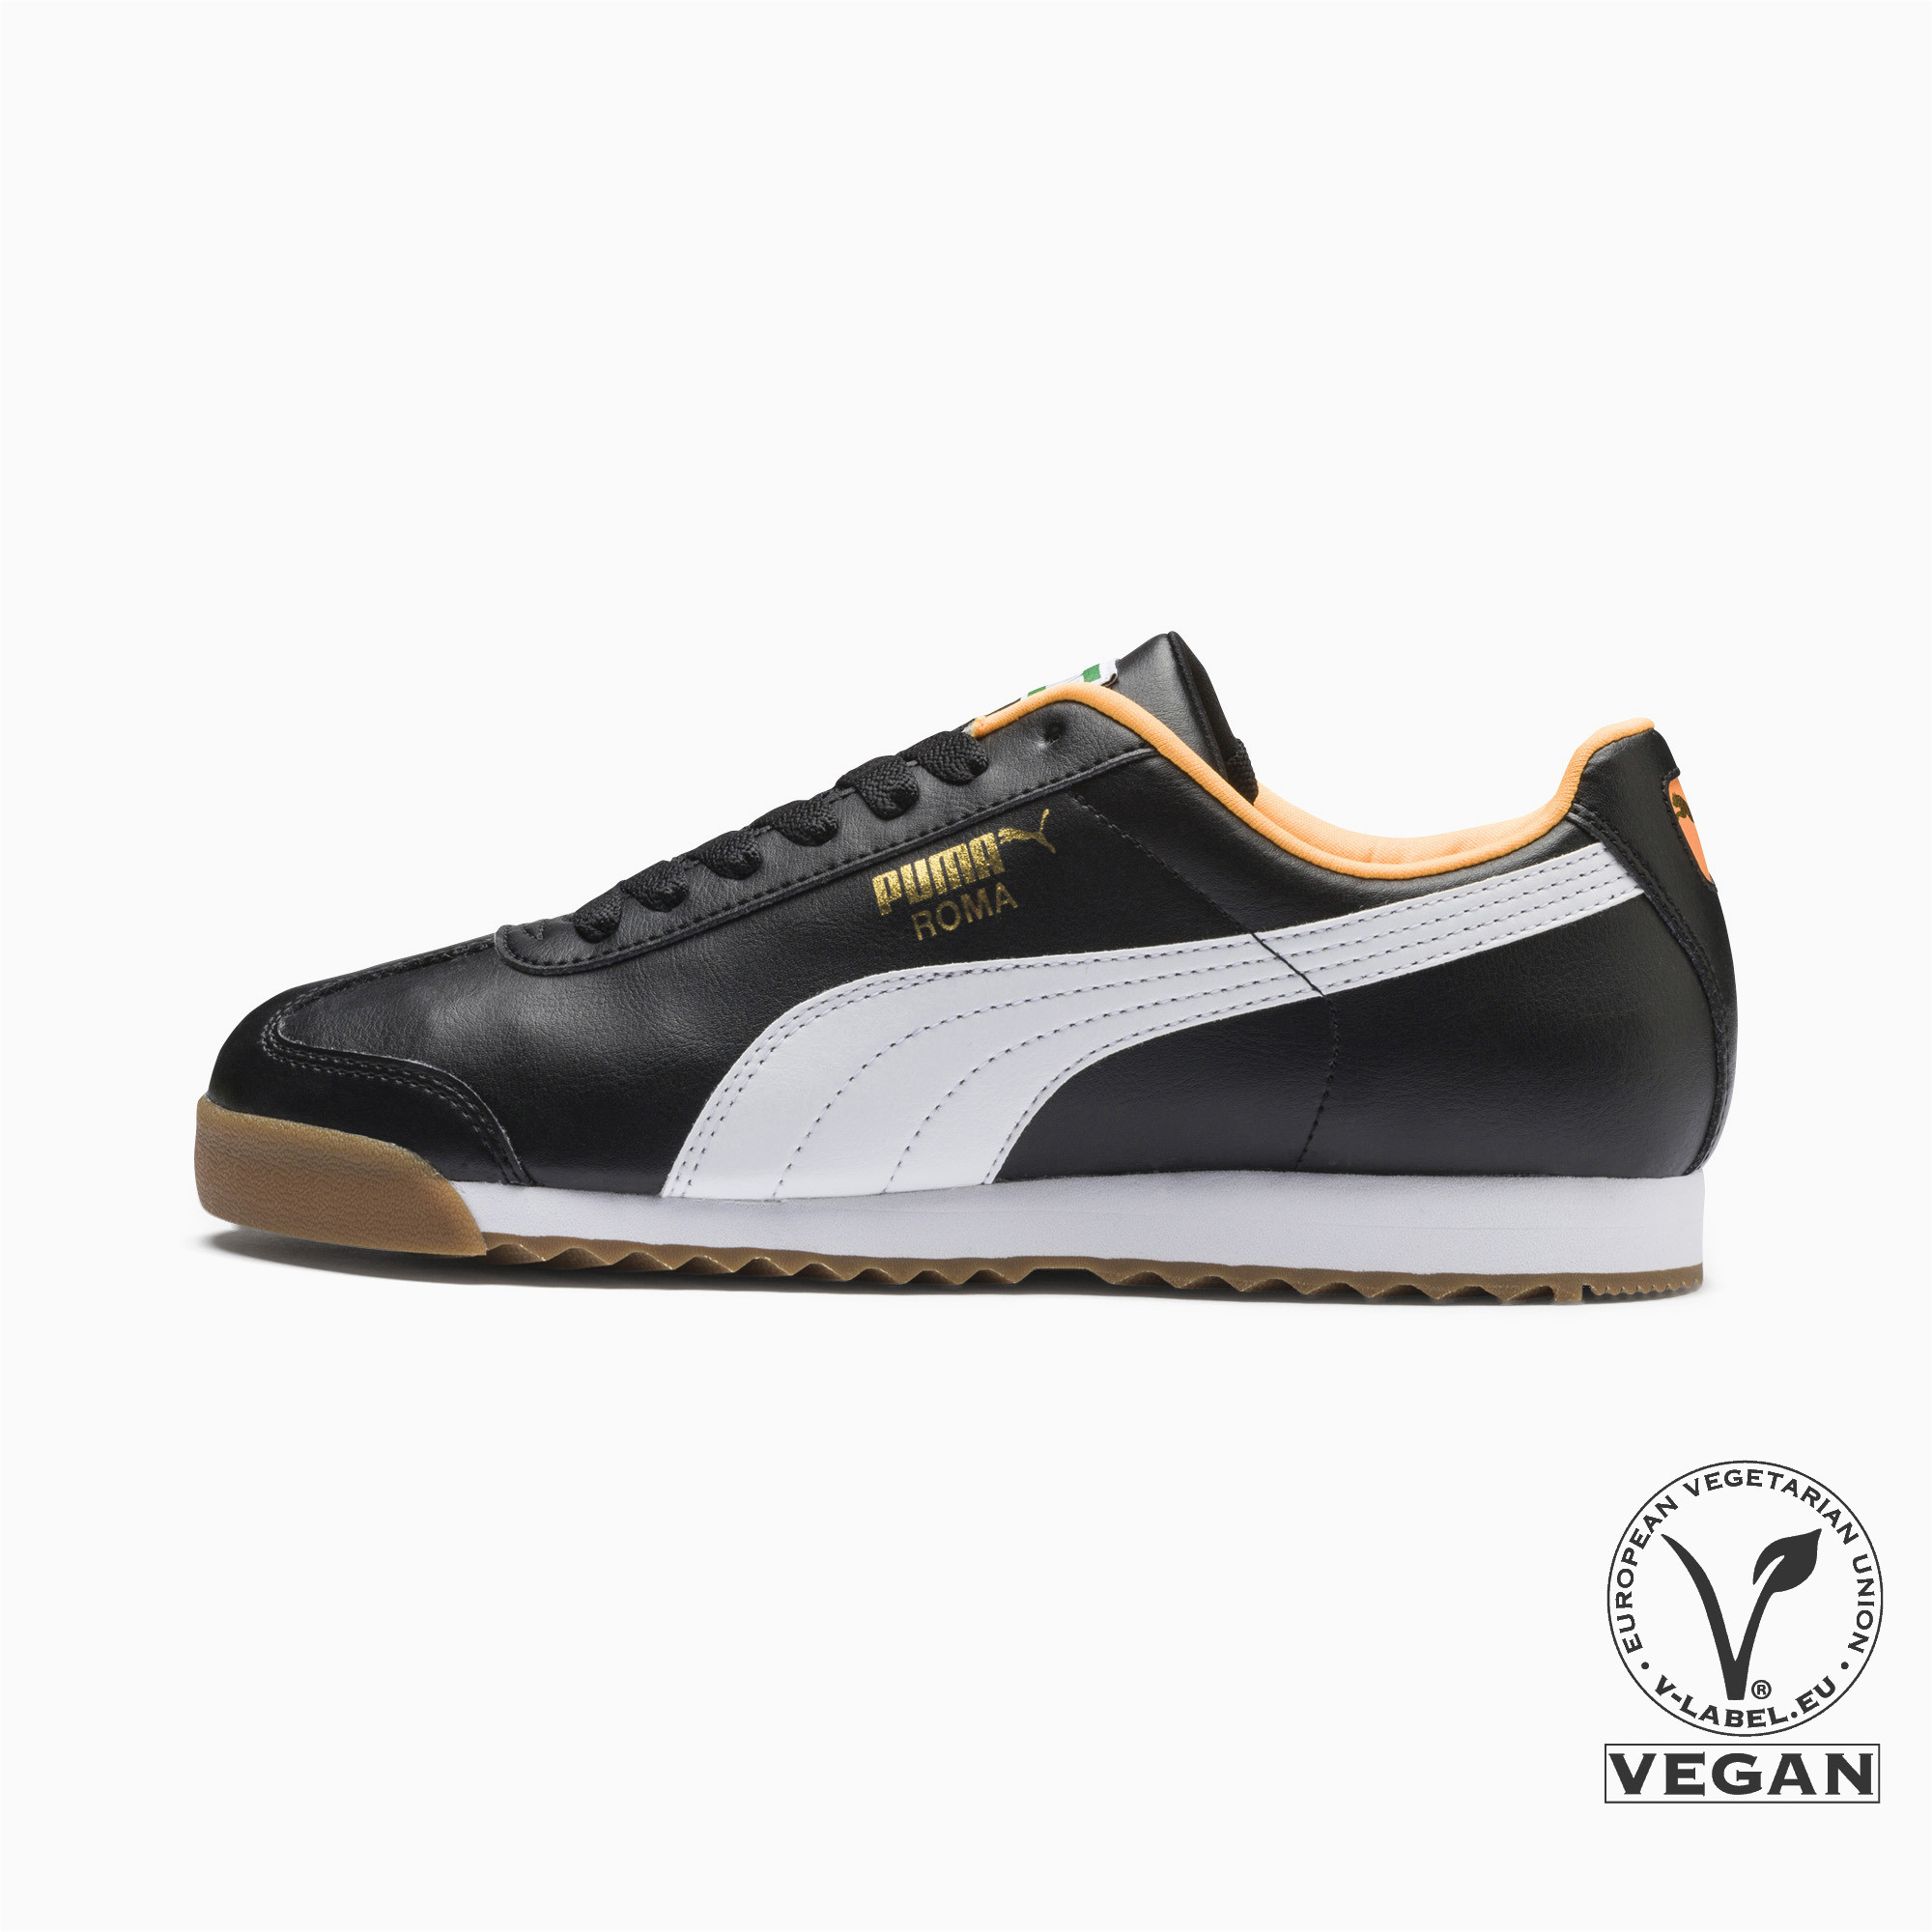 PUMA-Roma-Basic-Men-039-s-Sneakers-Men-Shoe-Sport-Shoe thumbnail 24